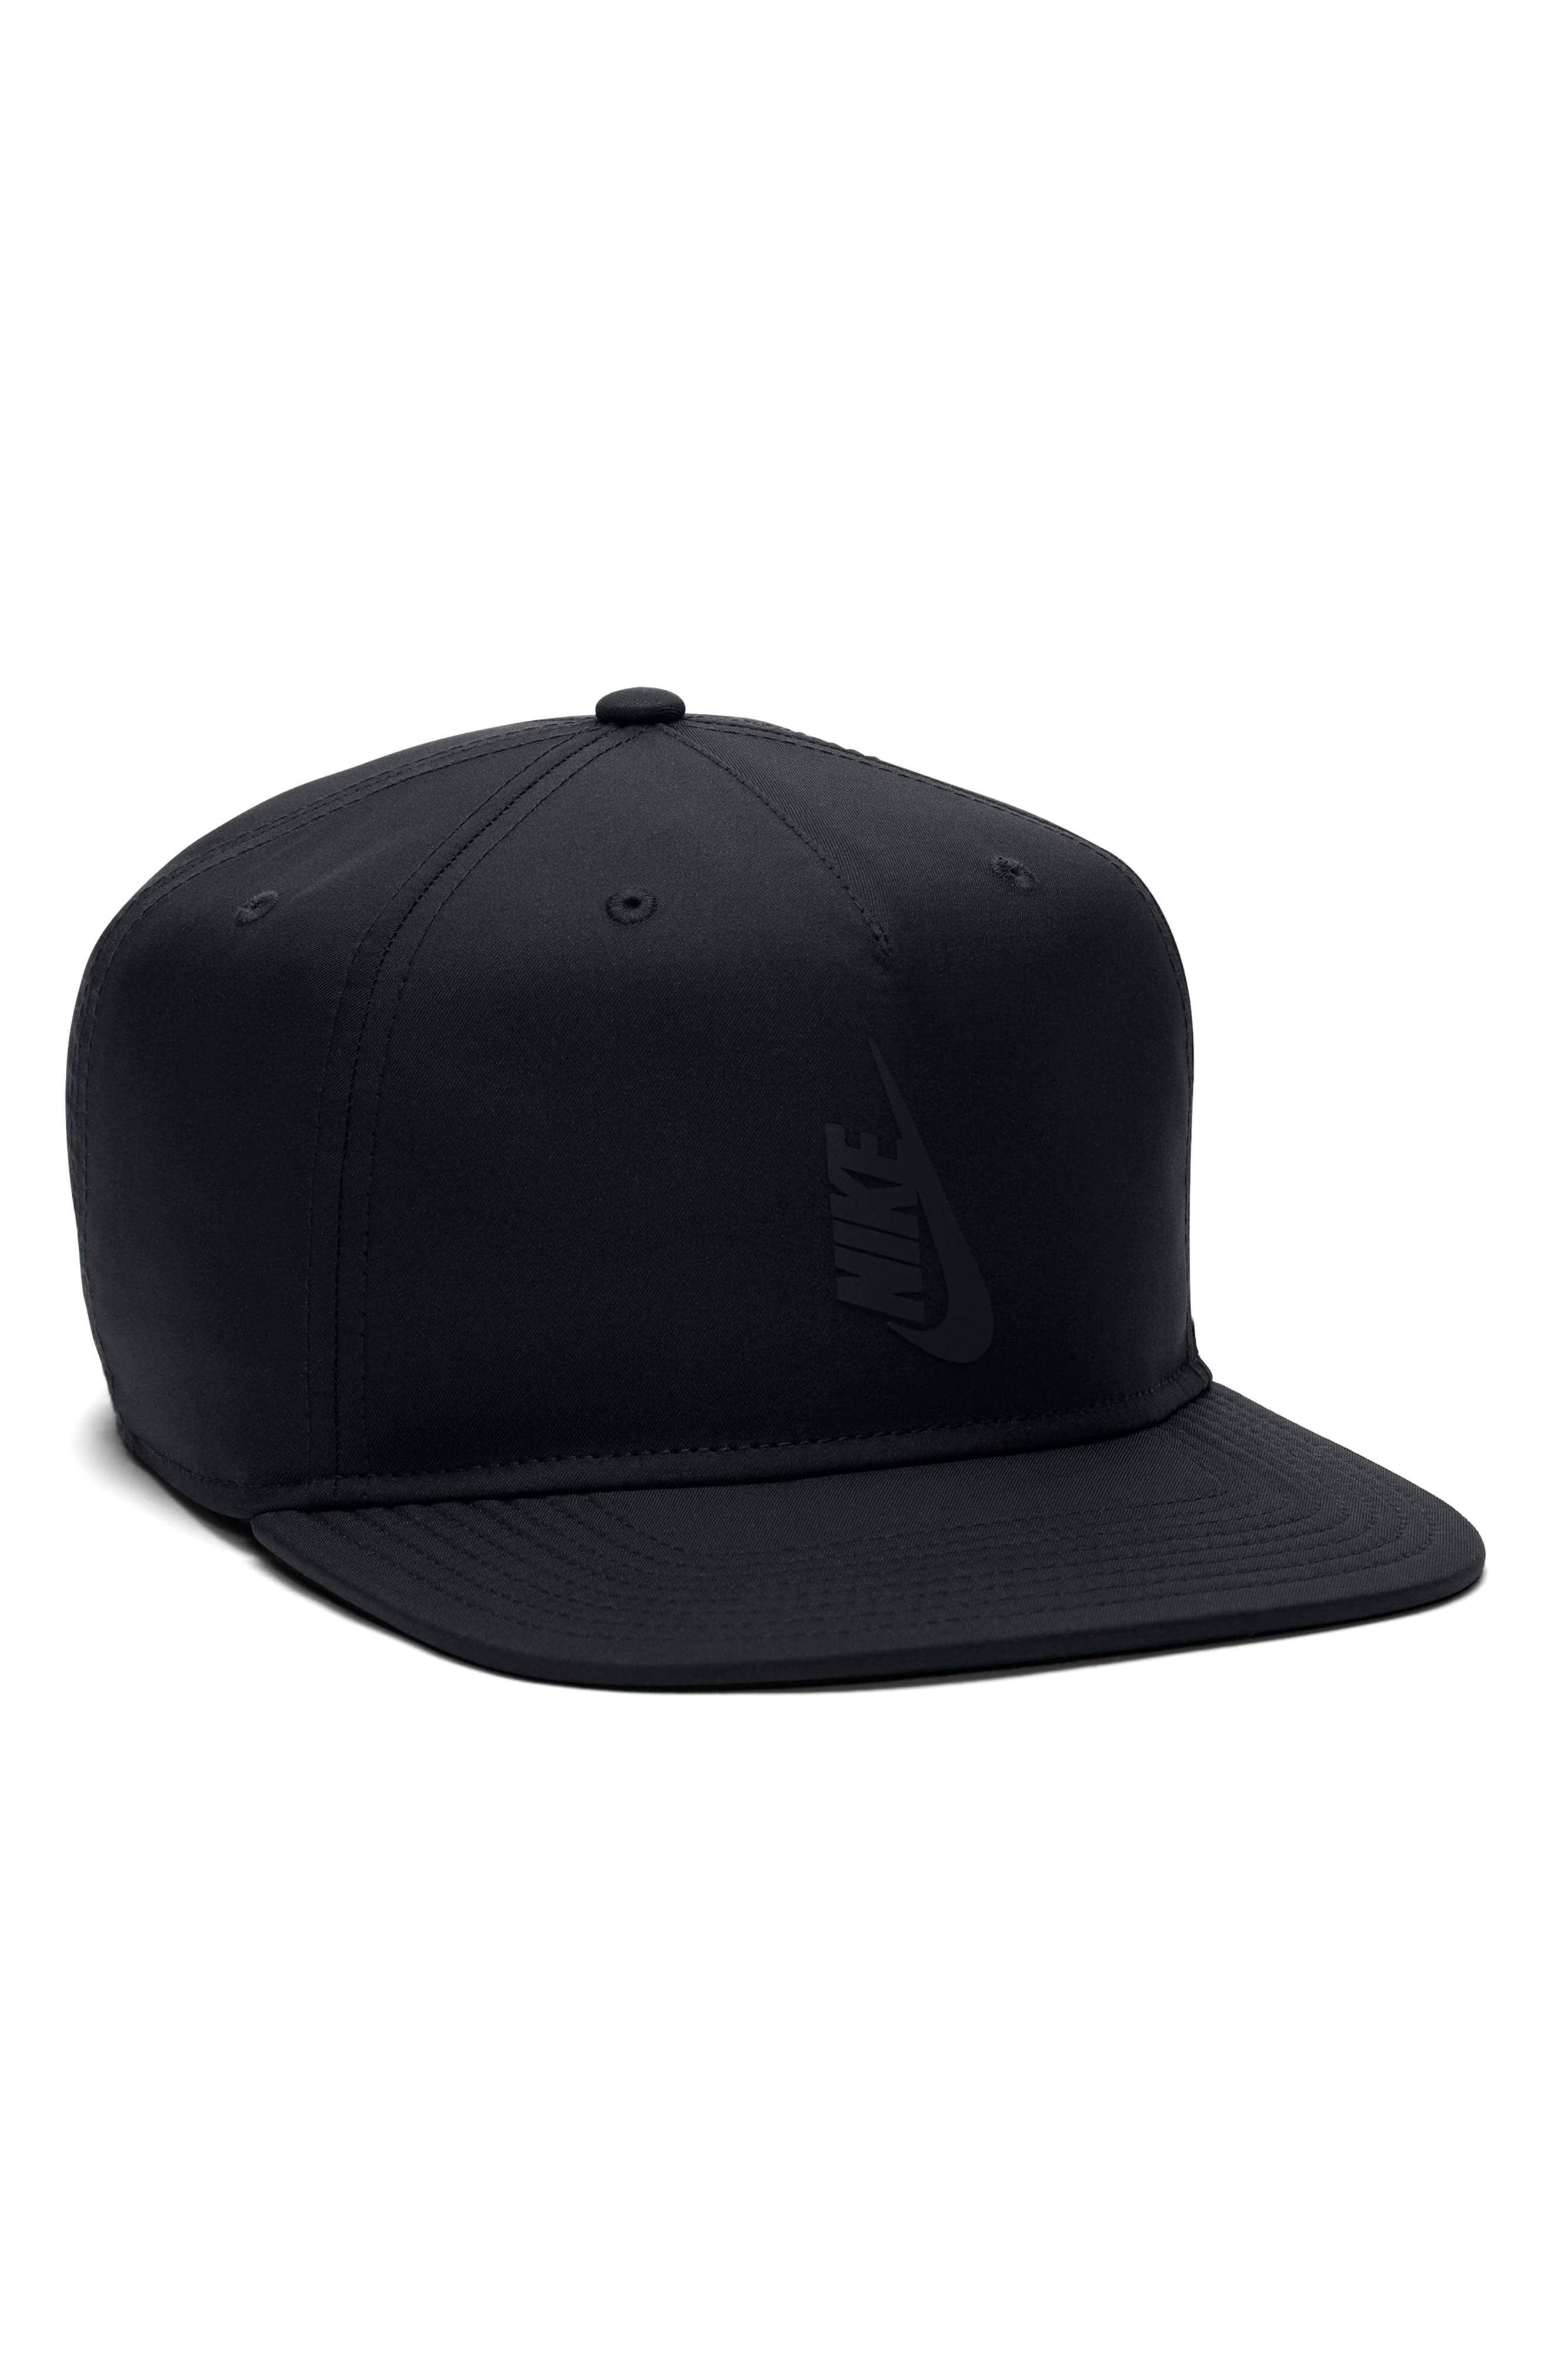 NikeLab Essentials Pro Adjustable Cap,                             Alternate thumbnail 2, color,                             010